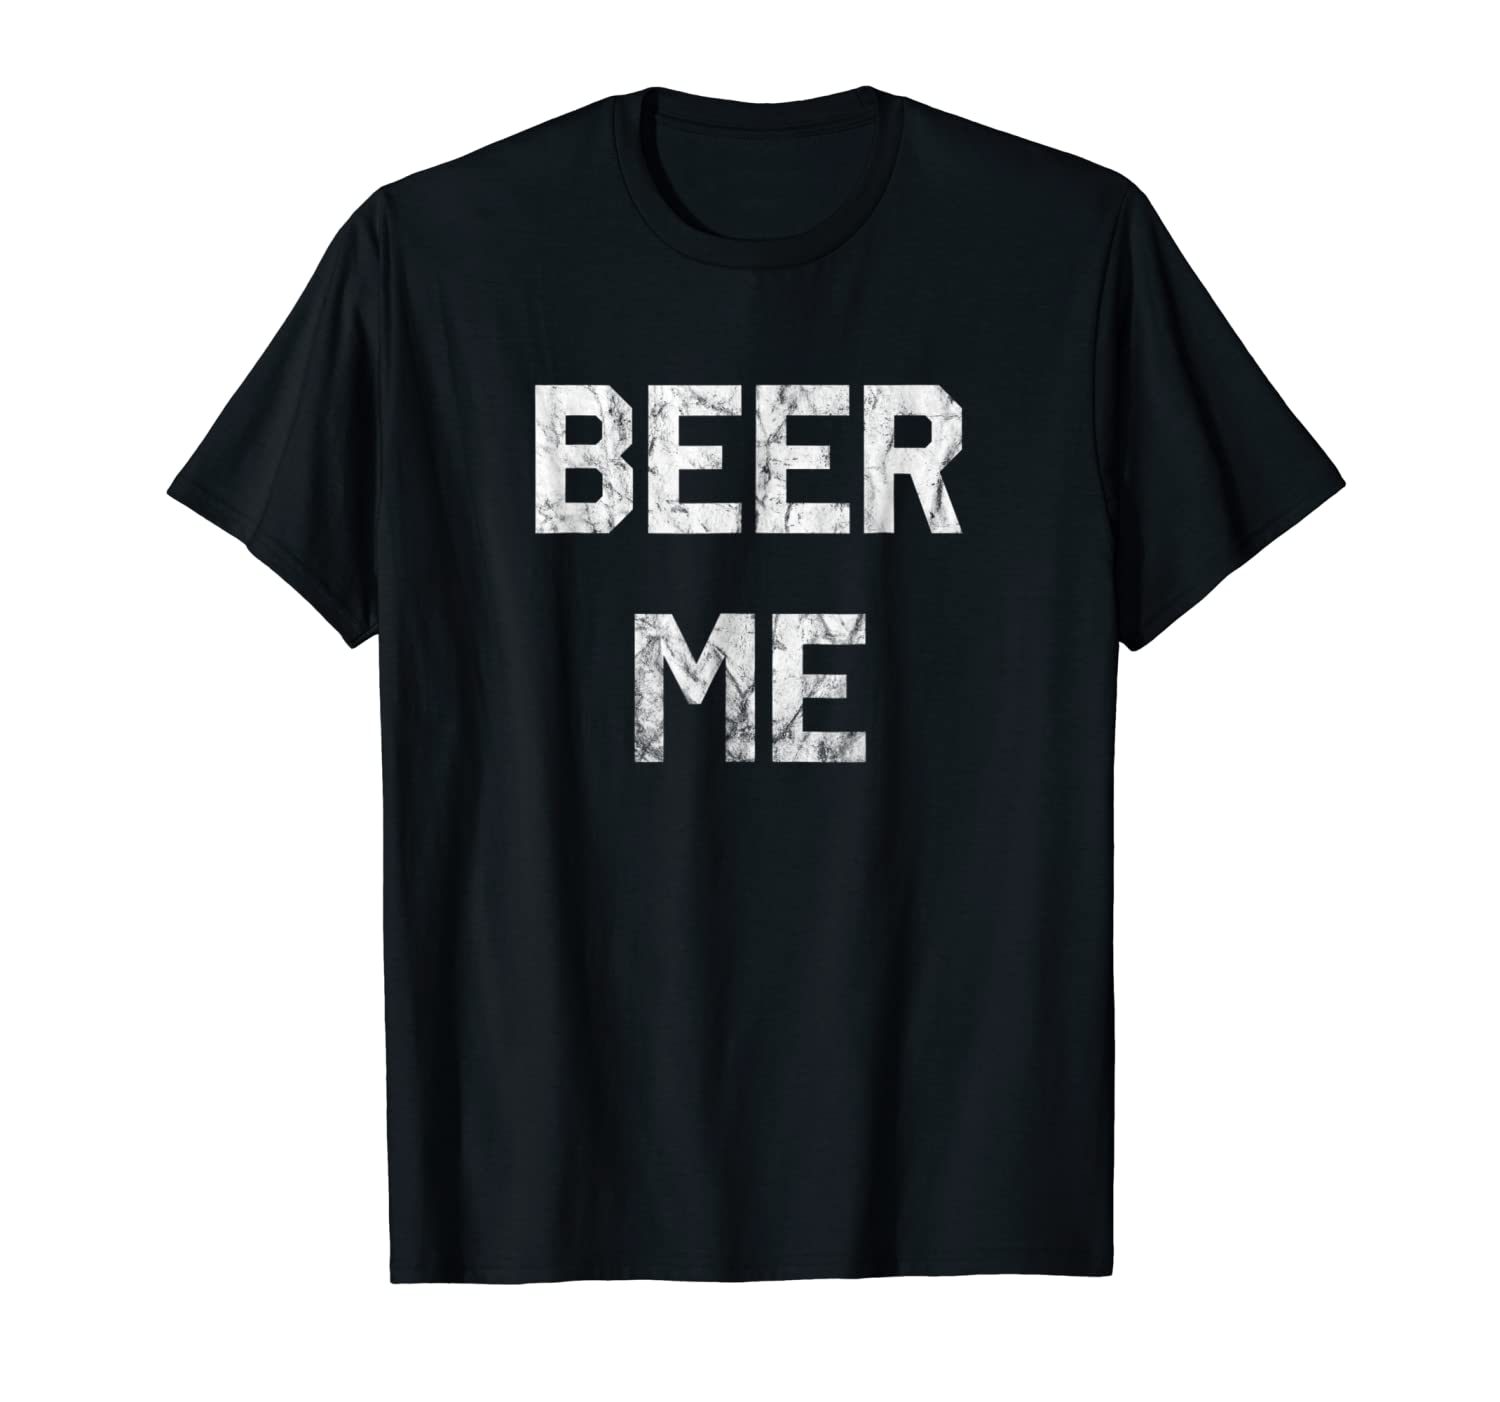 743034712 Amazon.com: Beer Me T-Shirt Funny Beer Drinking T-Shirt: Clothing